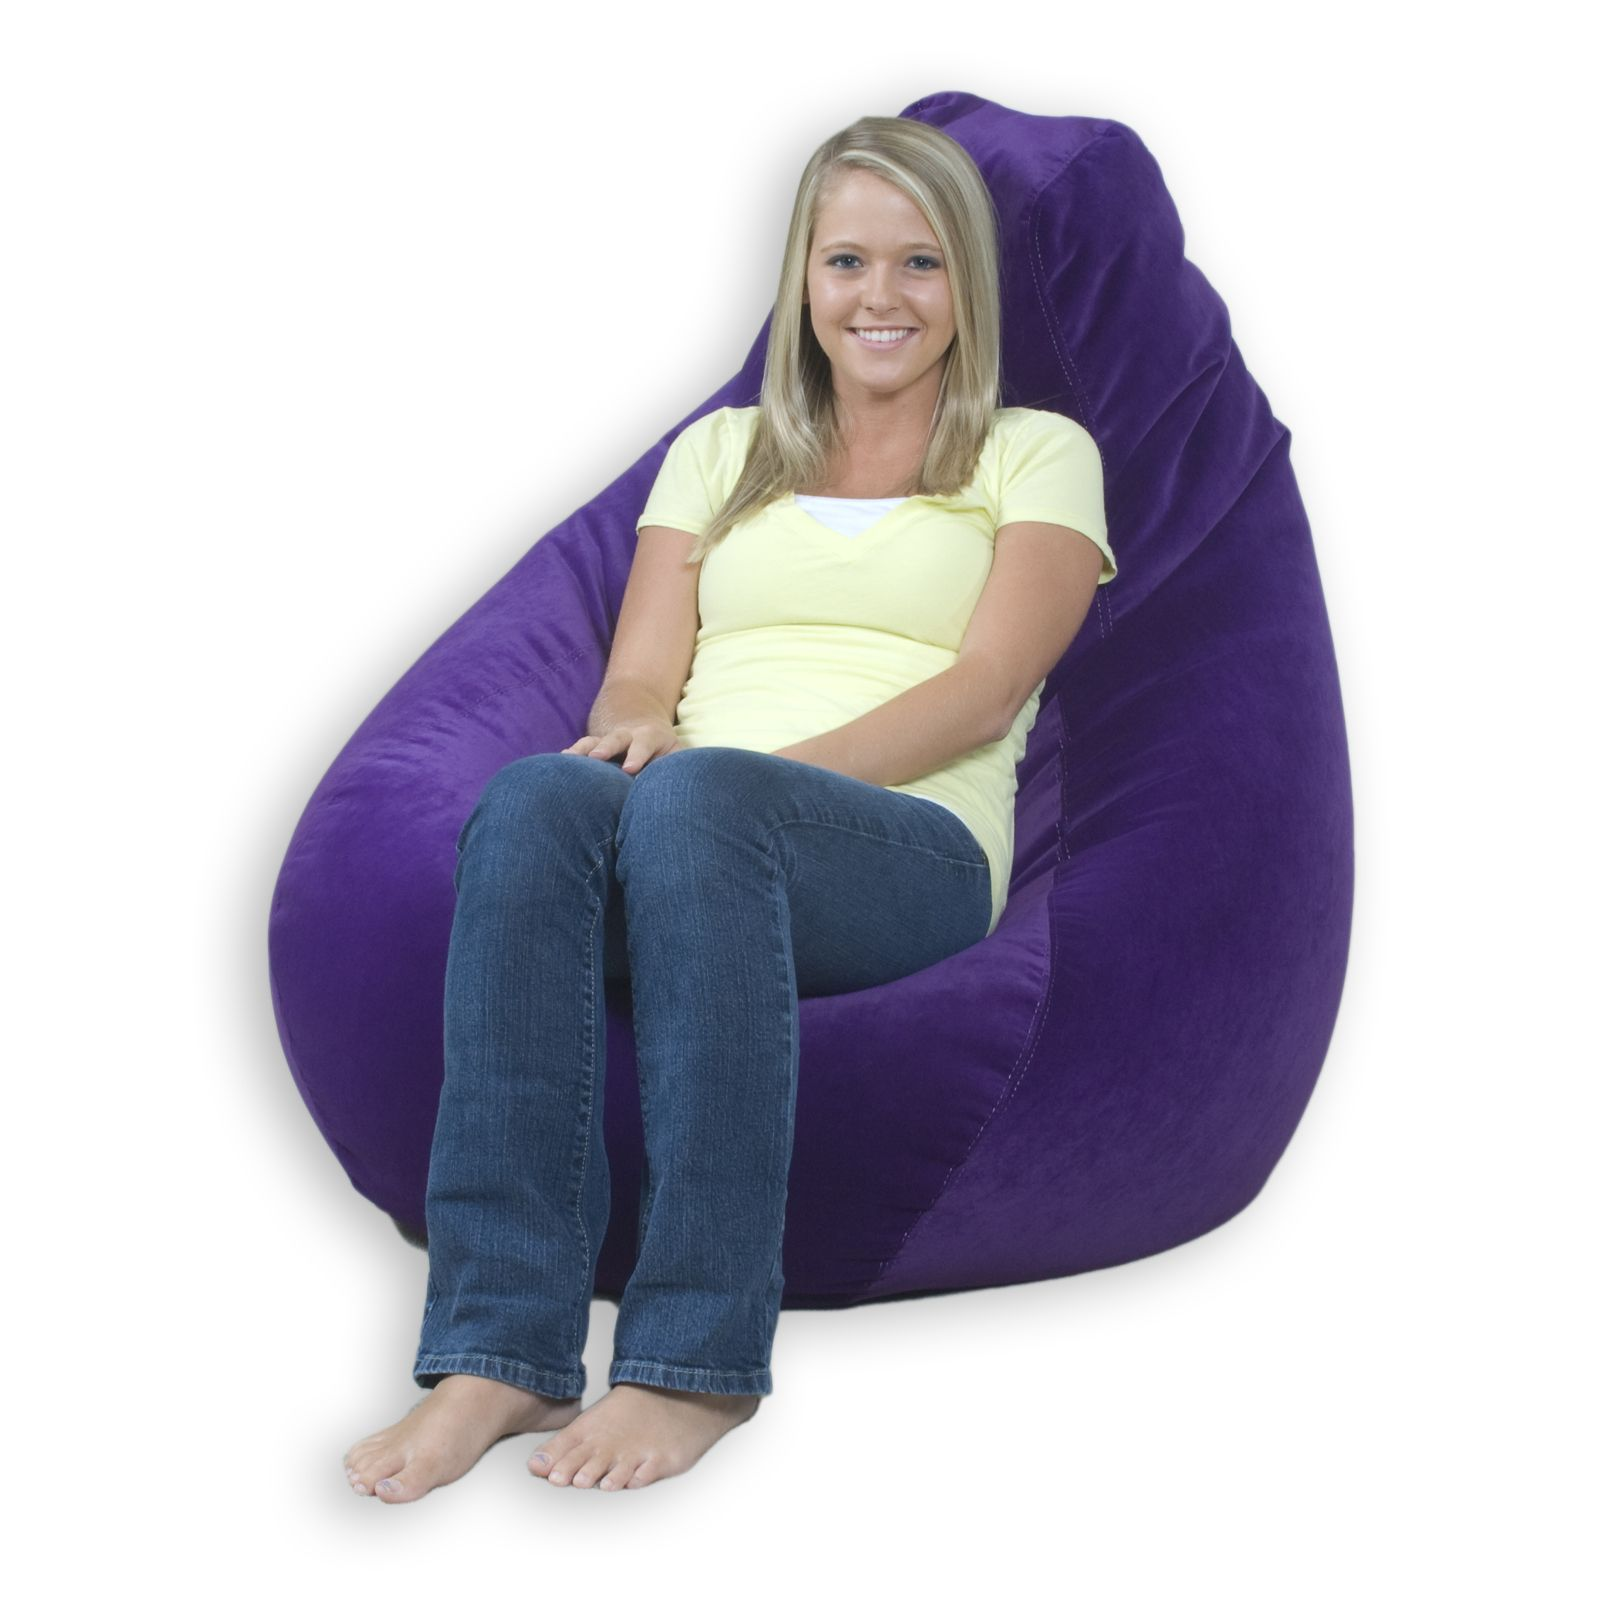 Do You Have The Extra Large Bean Bag Chairs, But You Just Get Confused  Where To Put This Bulky Item?